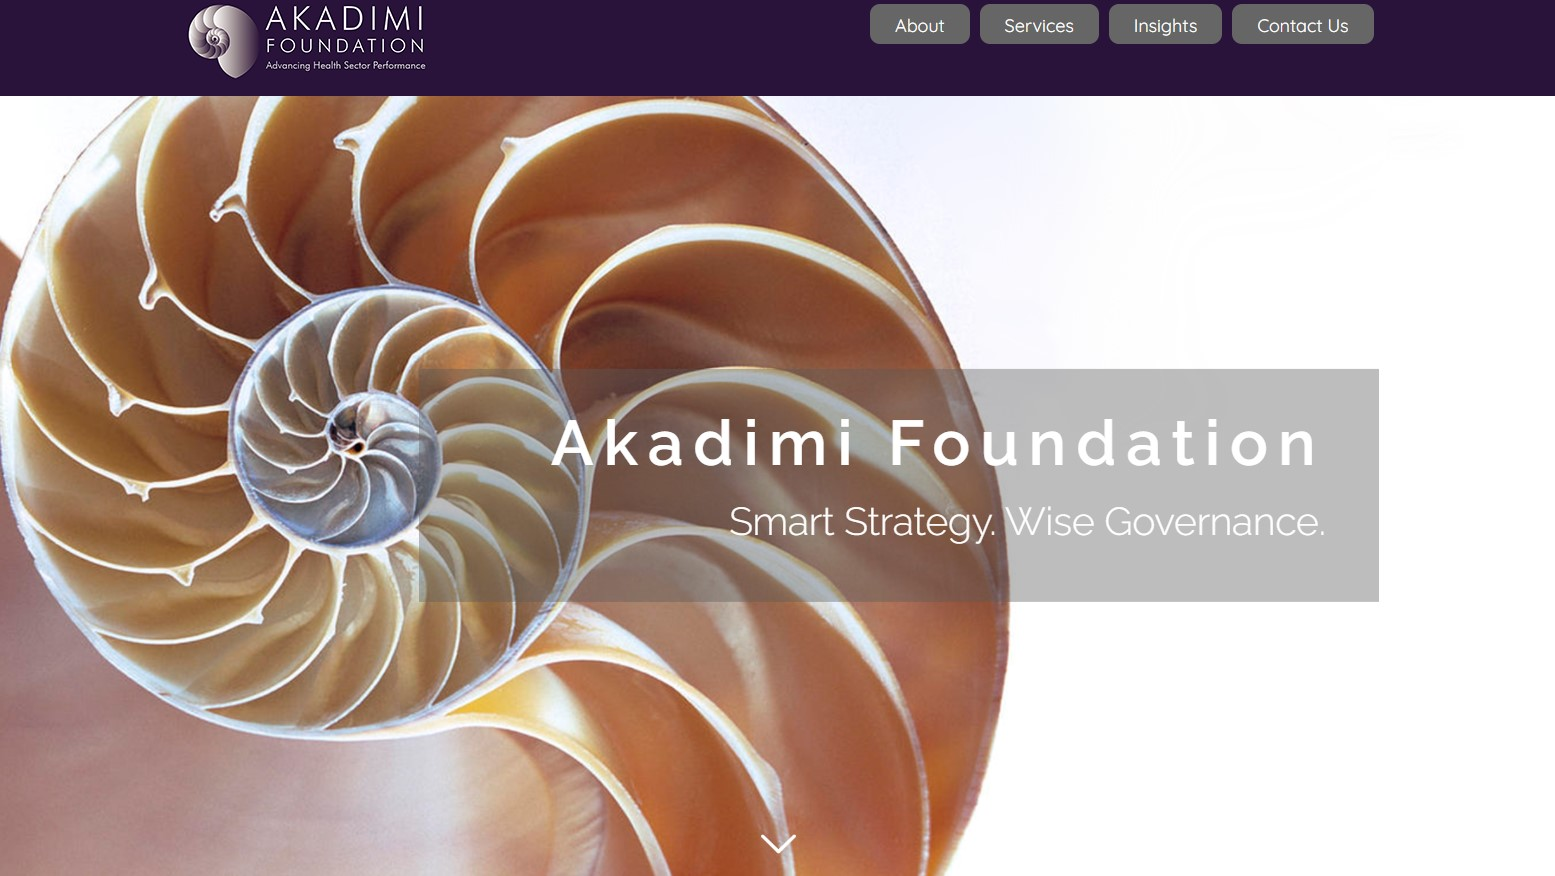 Akadimi Foundation